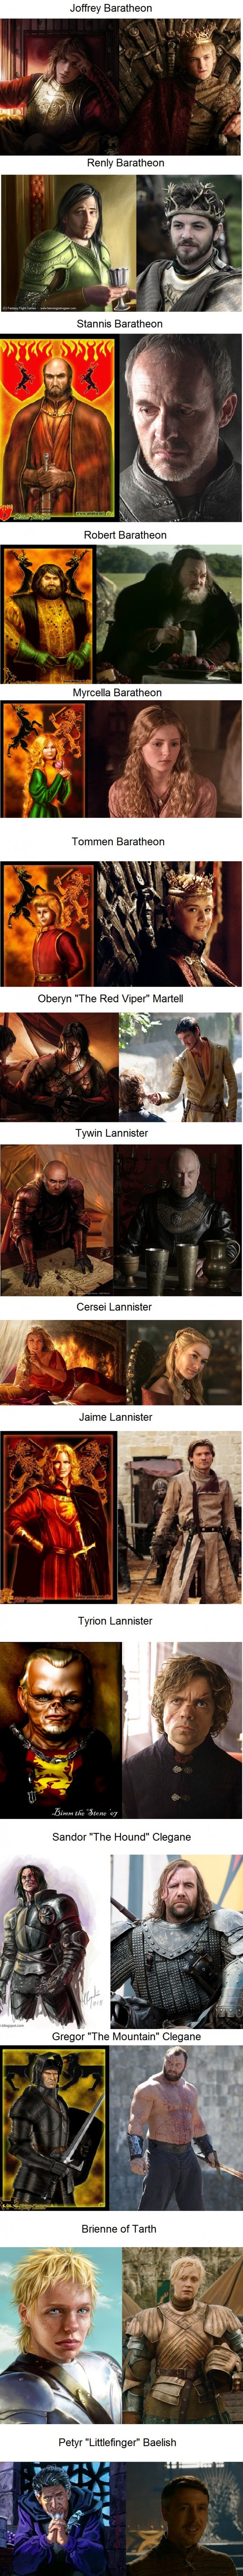 game-of-thrones-characters-book-show